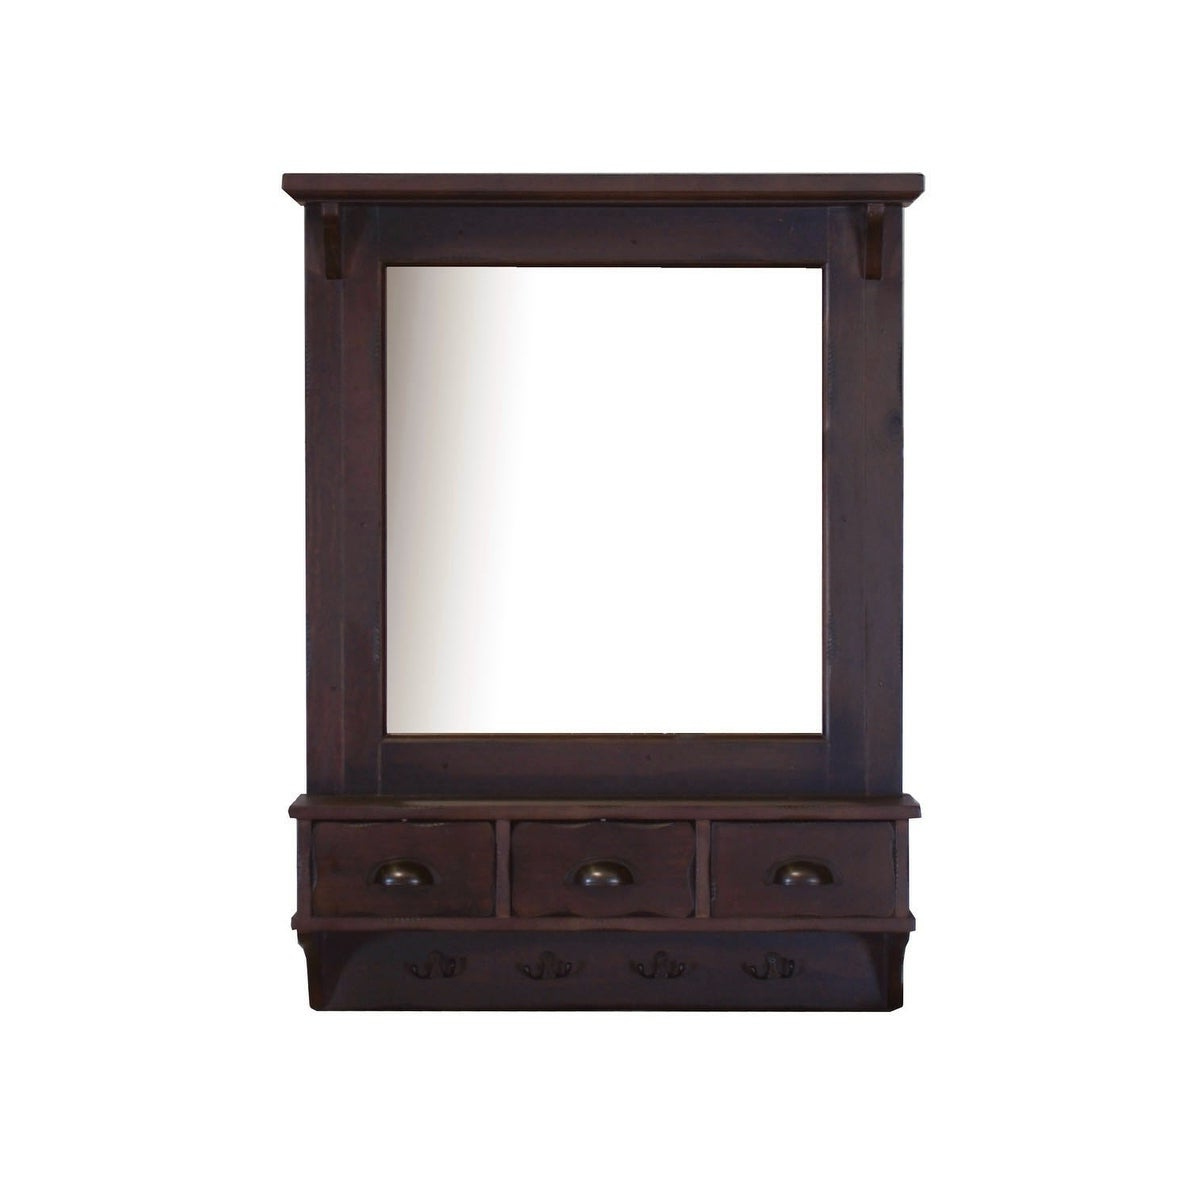 Popular Bombay Brown Wall Mirror With Drawers And Hooks – A/n Intended For Brown Wall Mirrors (View 13 of 20)